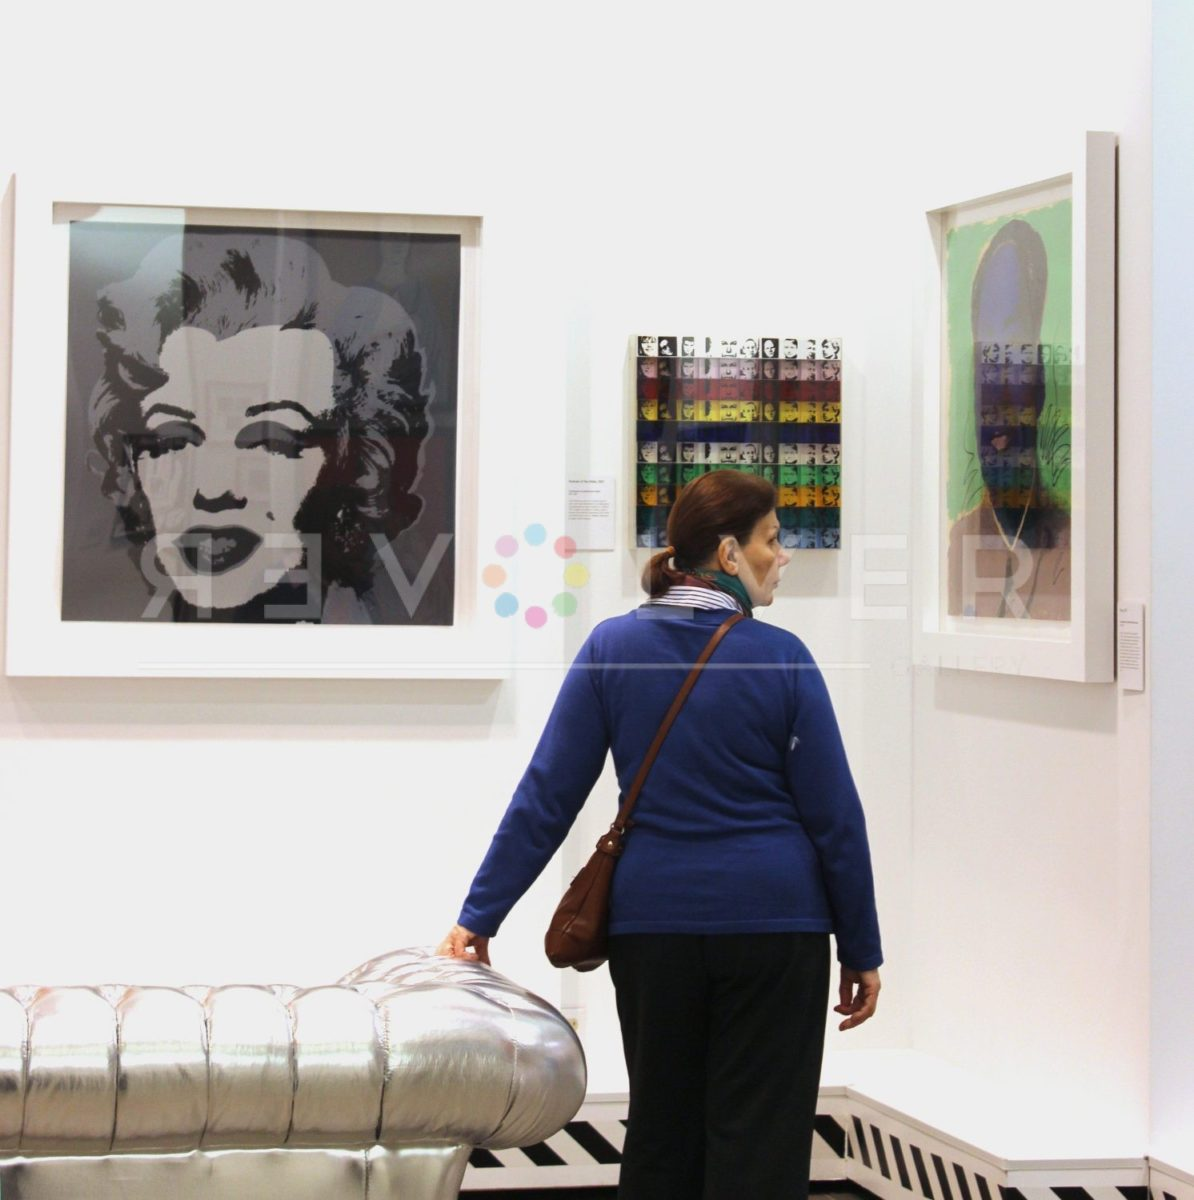 A Revolver Gallery patron viewing a Mao and Marilyn Monroe 24 screenprint.